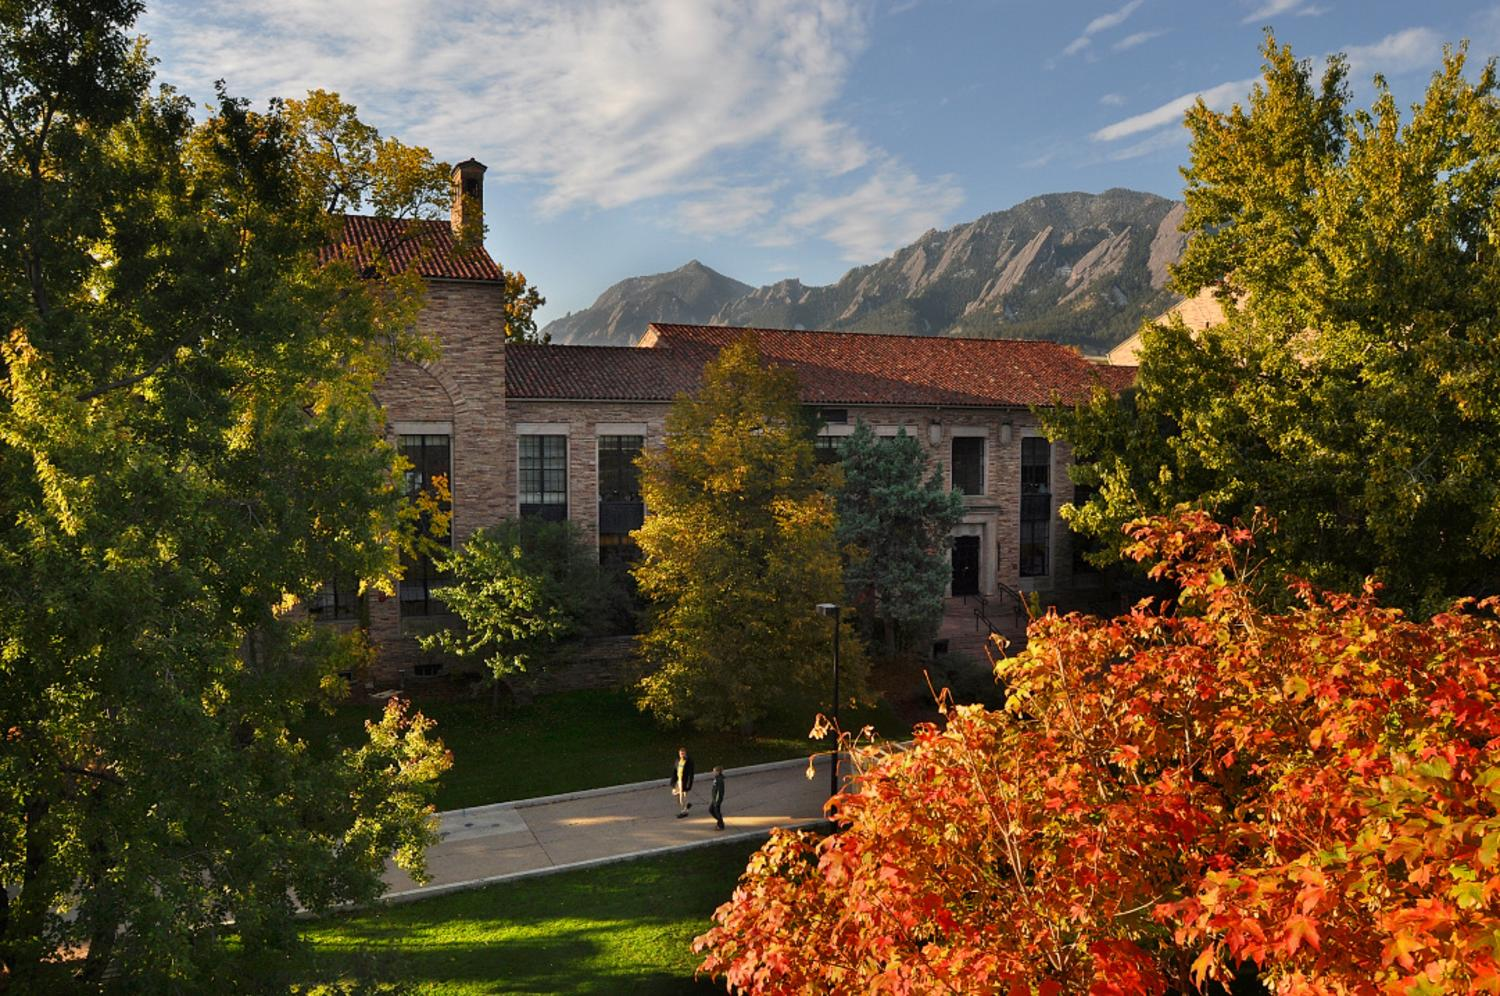 Students stroll by Hellems Arts and Sciences building on an autumn morning at the University of Colorado at Boulder with the majestic Flatirons in the distance.